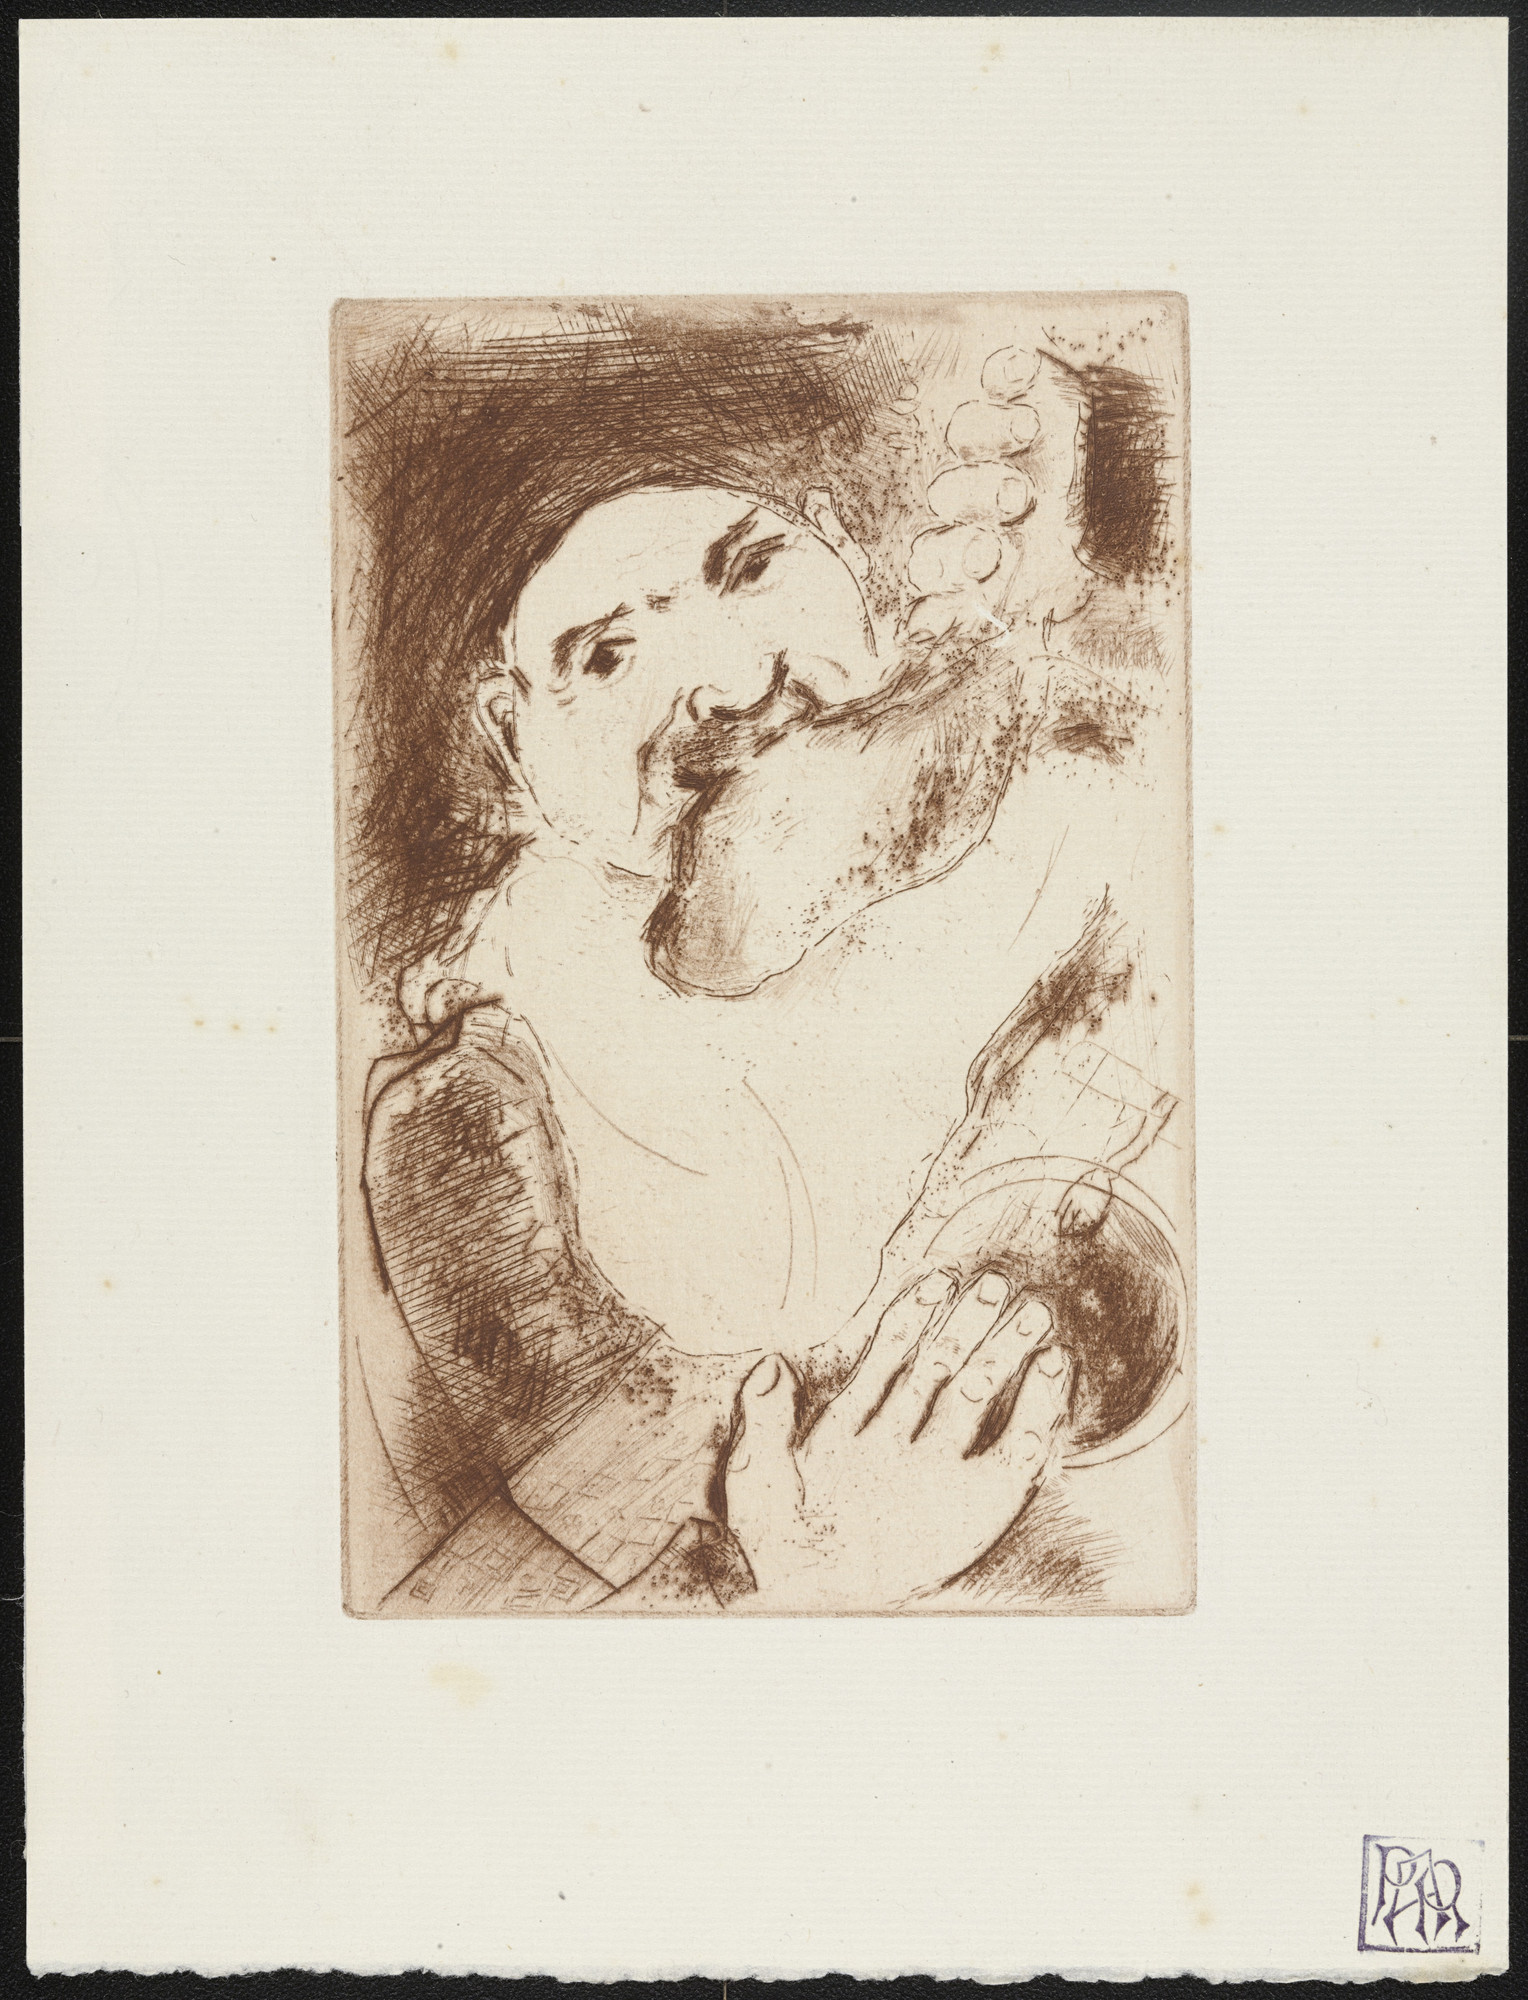 Marc Chagall. Gluttony I (La Gourmandise I) from The Seven Deadly Sins (Les Sept péchés capitaux). 1925, published 1926